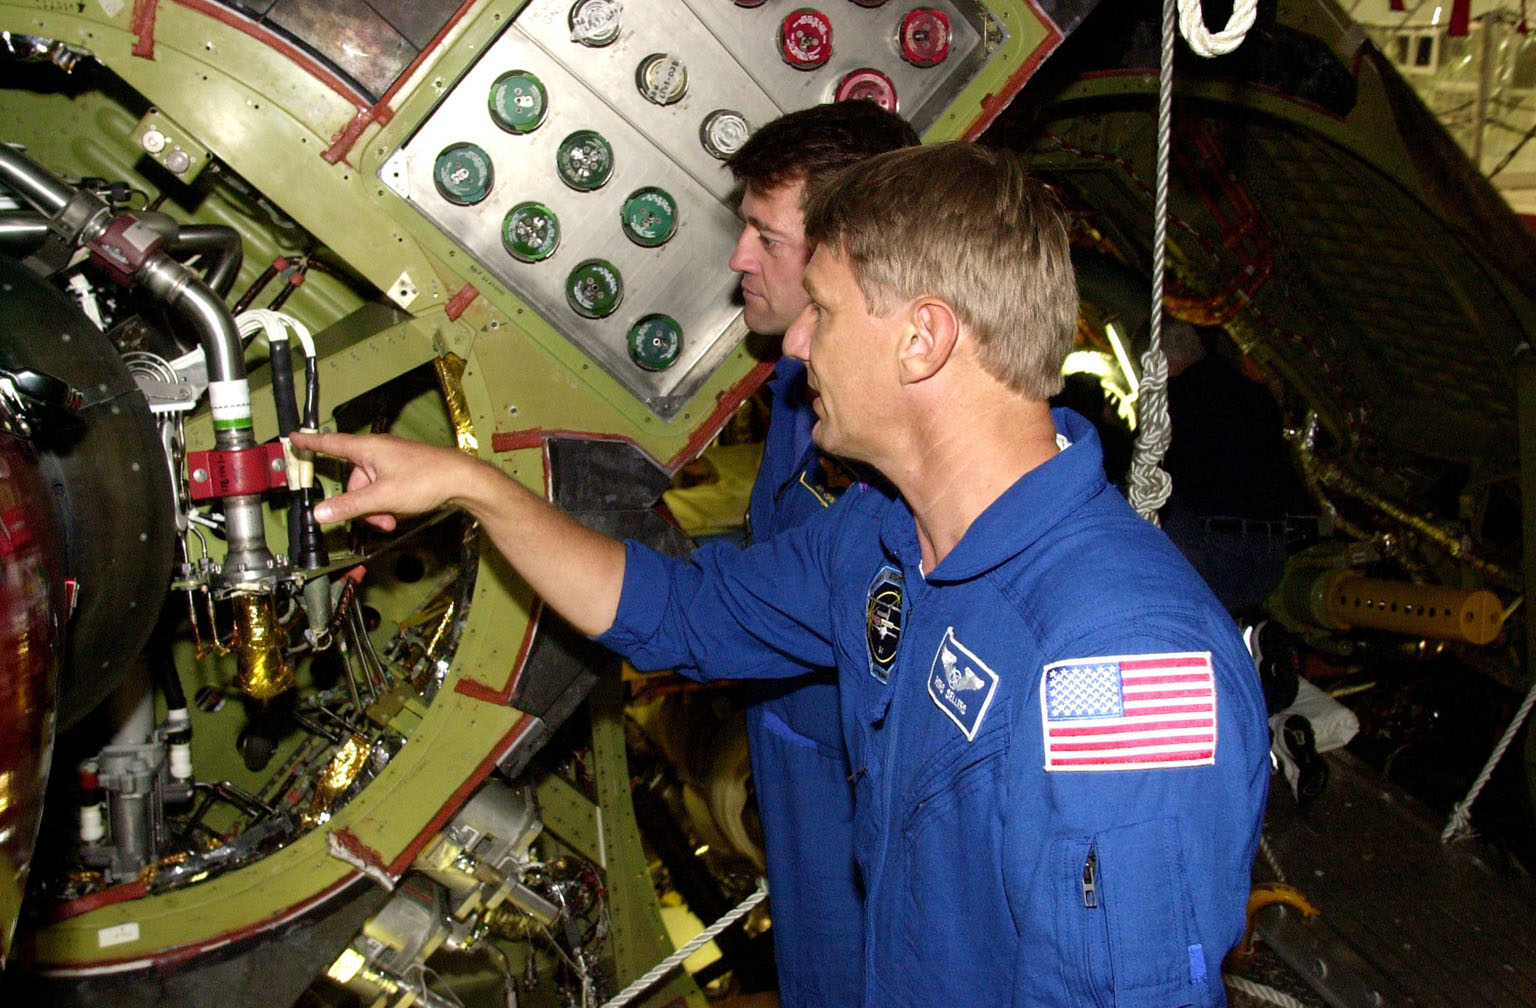 KENNEDY SPACE CENTER, FLA. -- During a Crew Equipment Interface Test, STS-112 Mission Specialist Piers Sellers (foreground) points to an engine line on Atlantis, the designated orbiter for the mission, while Commander Jeffrey Ashby (behind) looks on. STS-112 is the 15th assembly flight to the International Space Station and will be ferrying the S1 Integrated Truss Structure. The S1 truss is the first starboard (right-side) truss segment, whose main job is providing structural support for the radiator panels that cool the Space Station's complex power system. The S1 truss segment also will house communications systems, external experiment positions and other subsystems. The S1 truss will be attached to the S0 truss. STS-112 is currently scheduled for launch Aug. 22, 2002